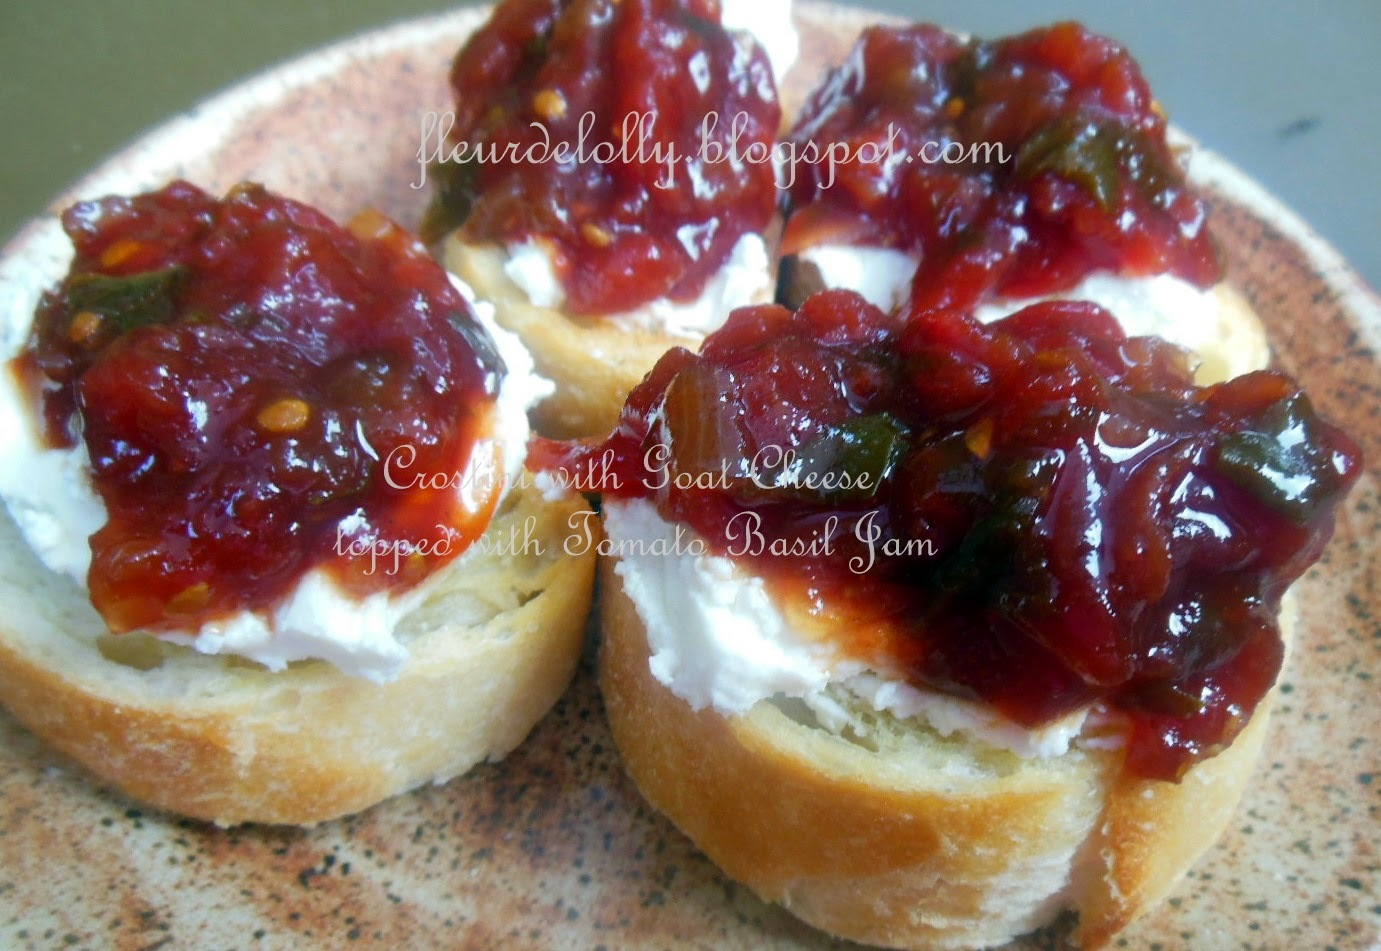 Tapas Thursday - Crostini with Goat Cheese and topped with Tomato Basil Jam